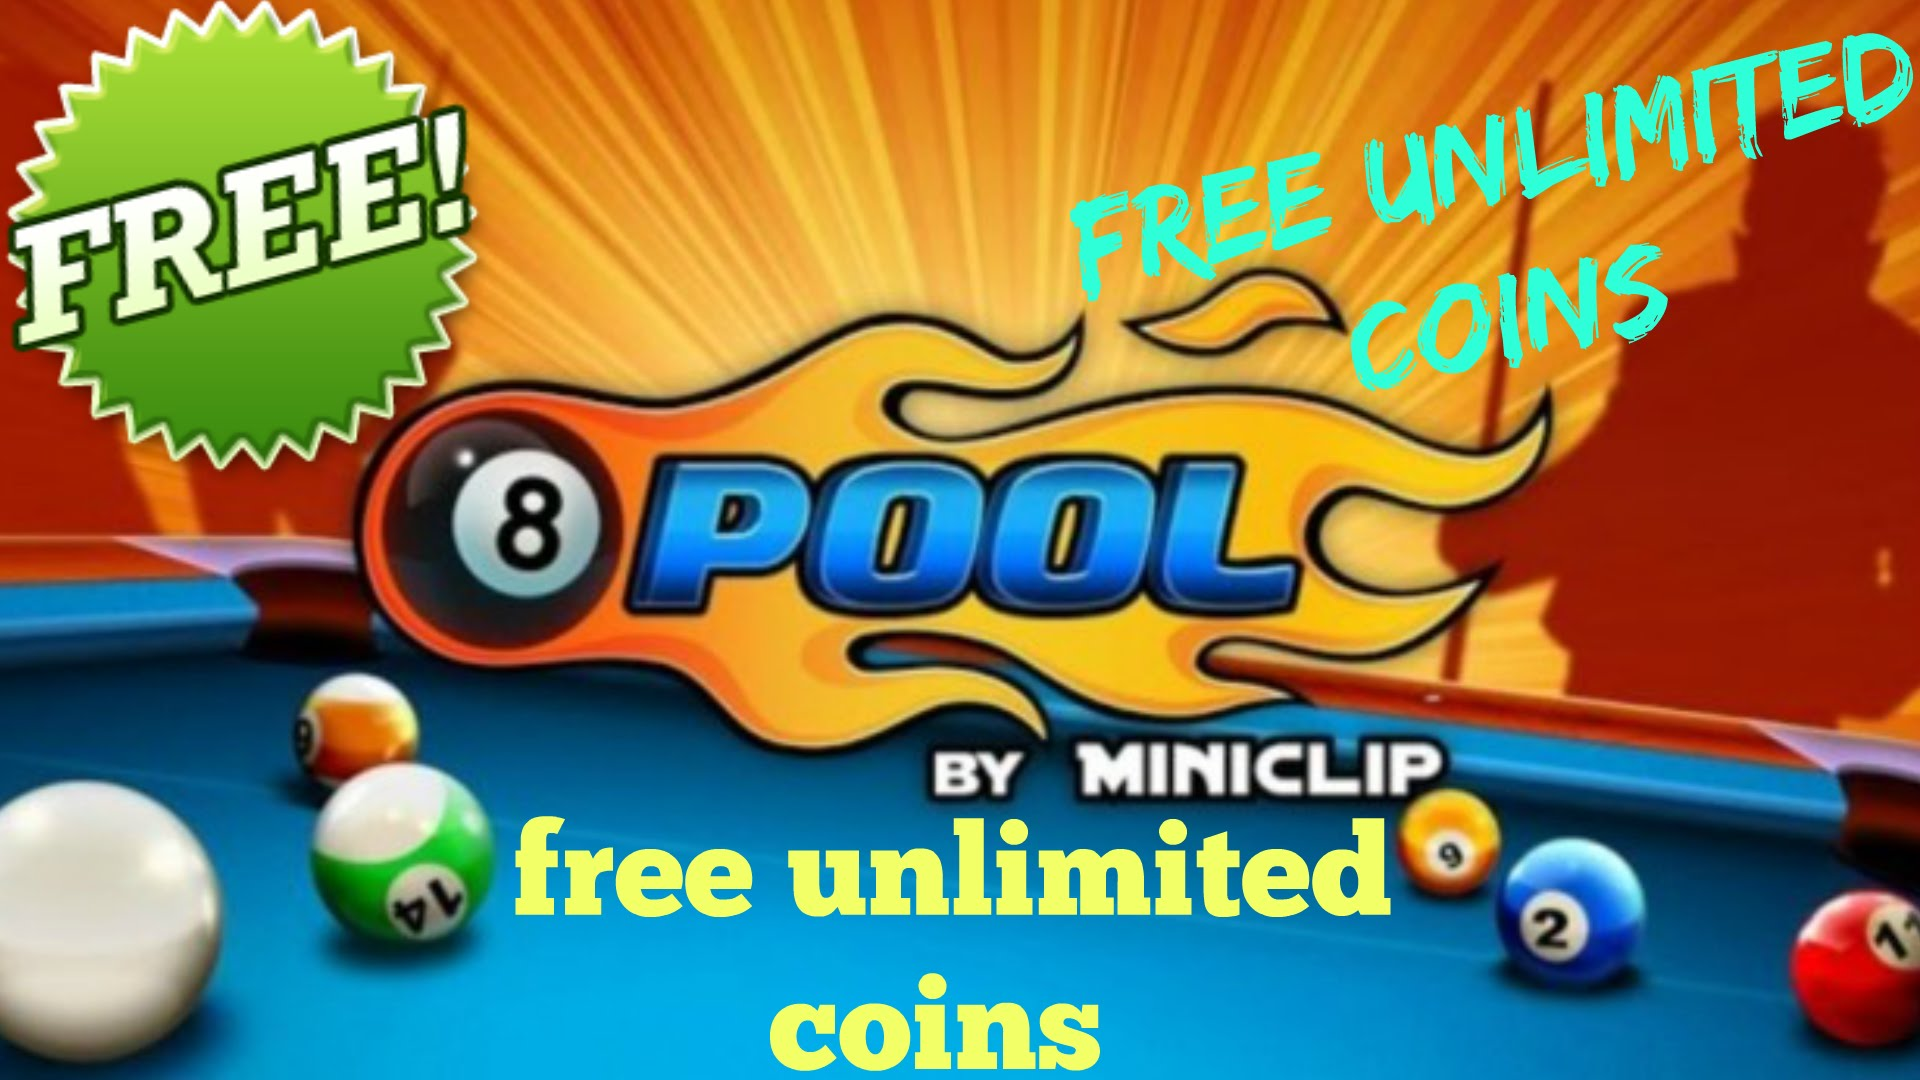 【KOAPPZ.COM 8 BALL POOL】 Cash and Coins FOR ANDROID IOS PC PLAYSTATION   100% WORKING METHOD   GET UNLIMITED RESOURCES NOW